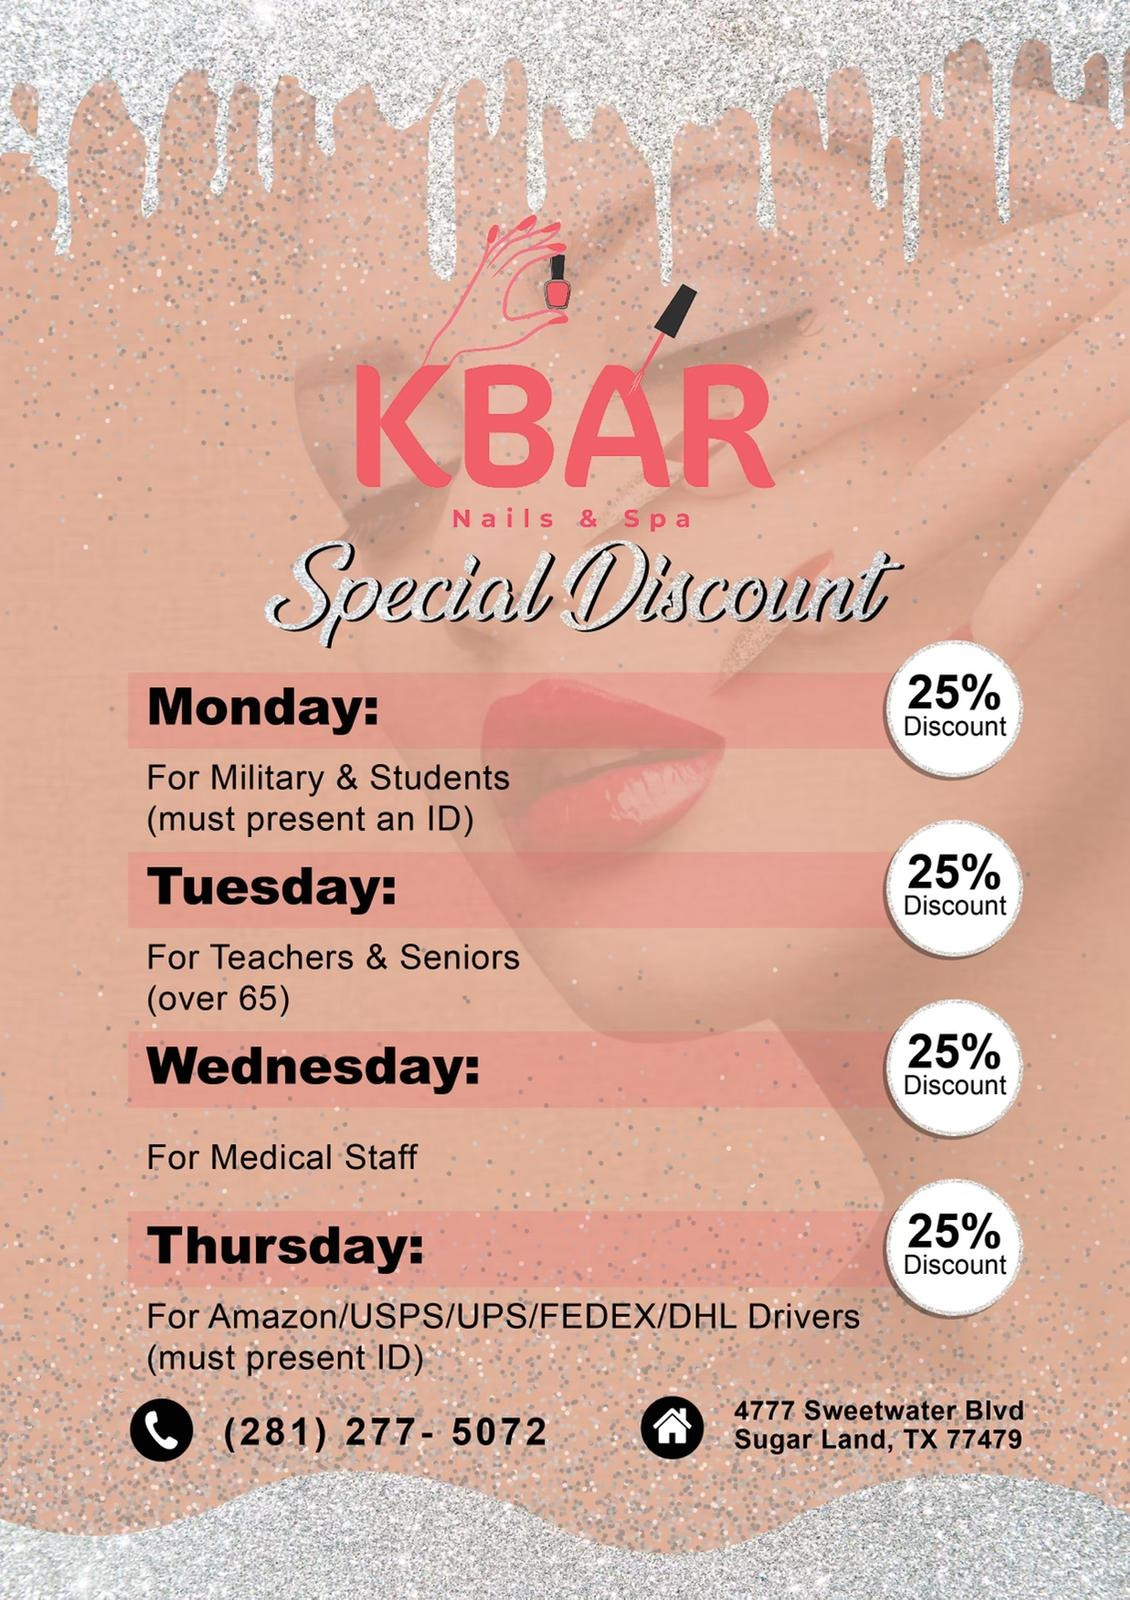 KBar Nails and Spa